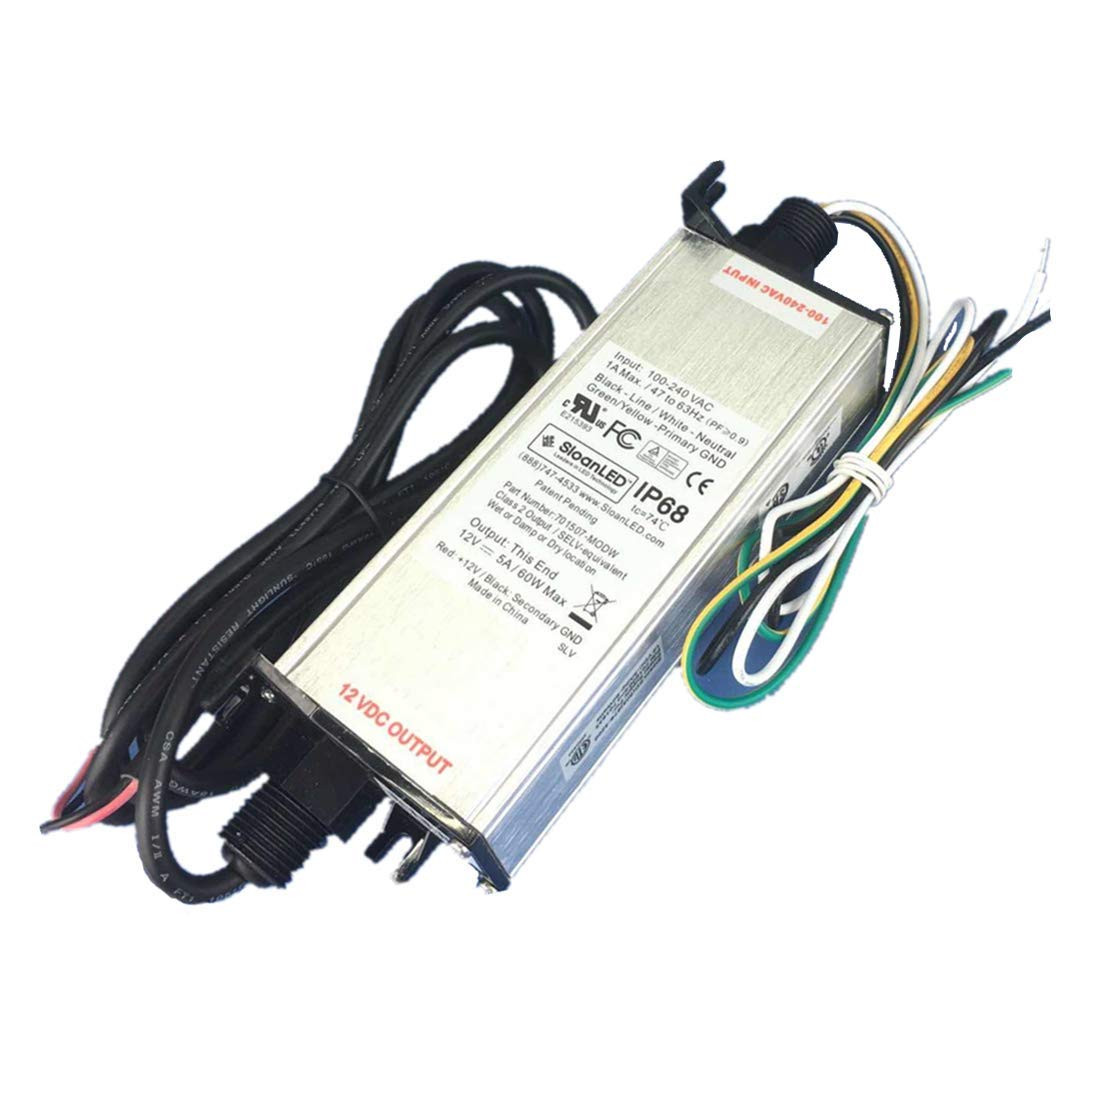 Led Power Supplies Drivers Transformers Online Shopping 12 Volt Dc Ul Listed Waterproof Ip68 Supply 60w Driver Transformer Low Voltage Output With 49ft 15m Wire